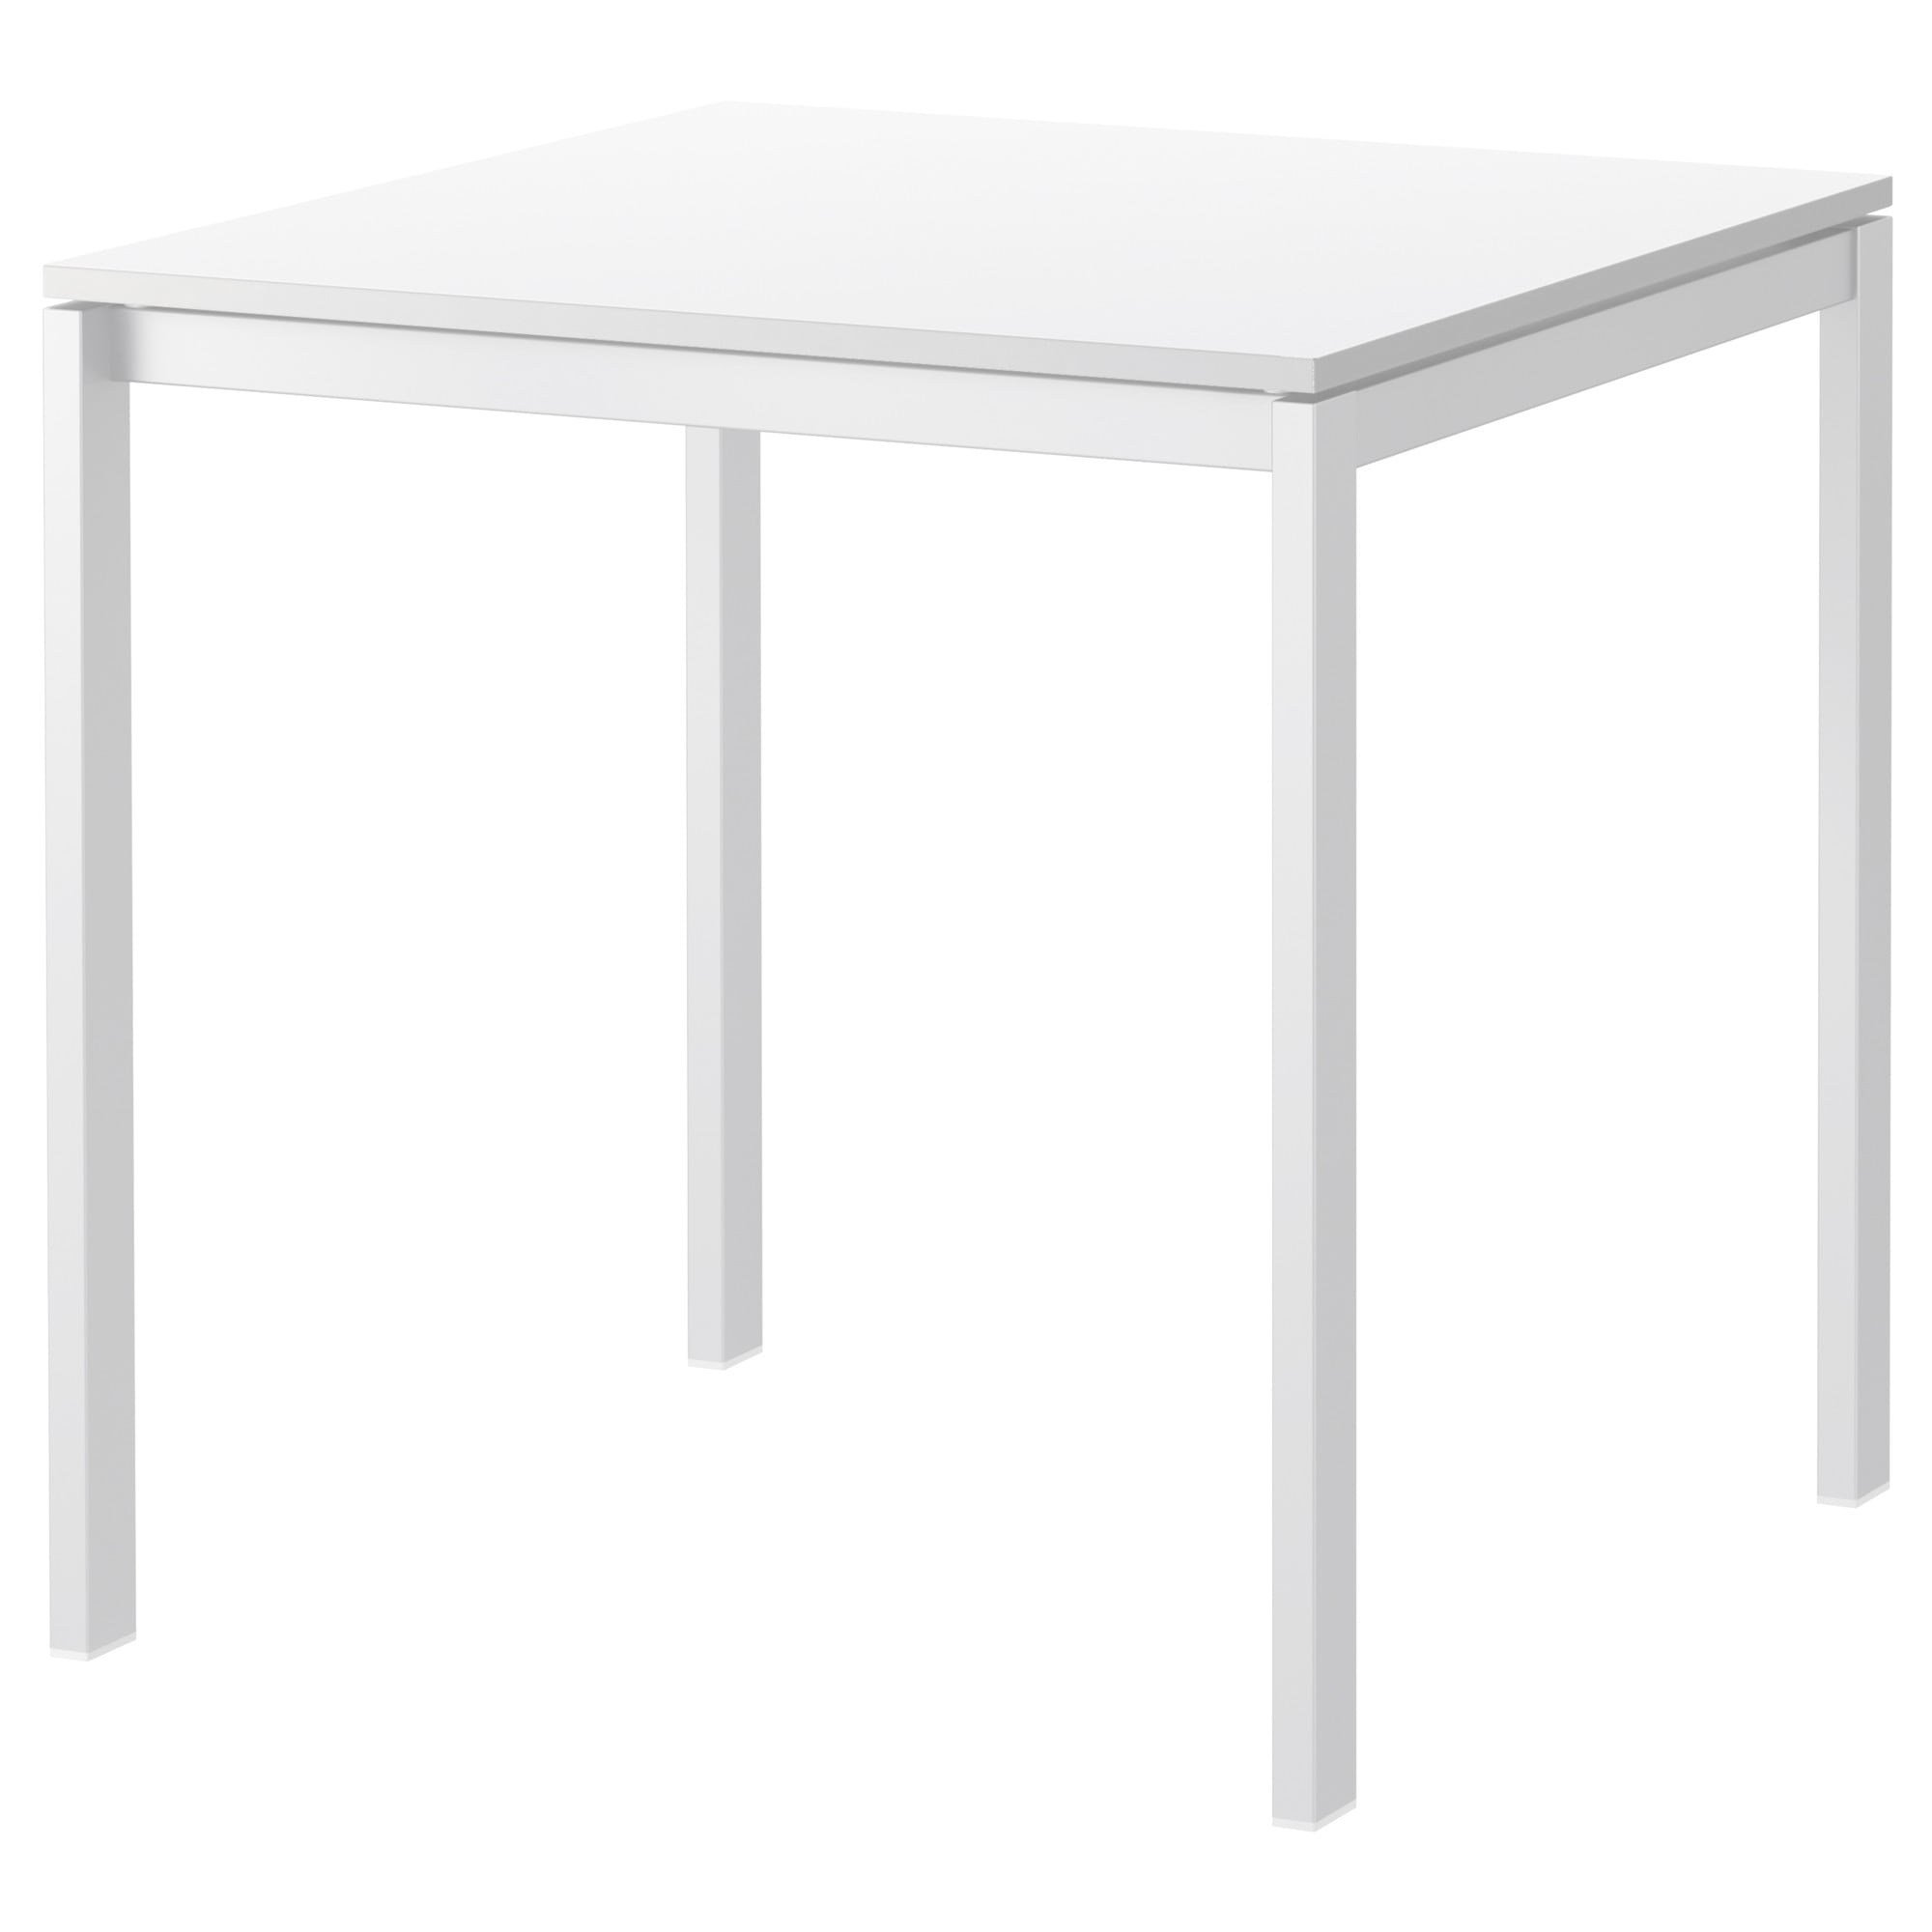 MELLTORP Table   IKEA